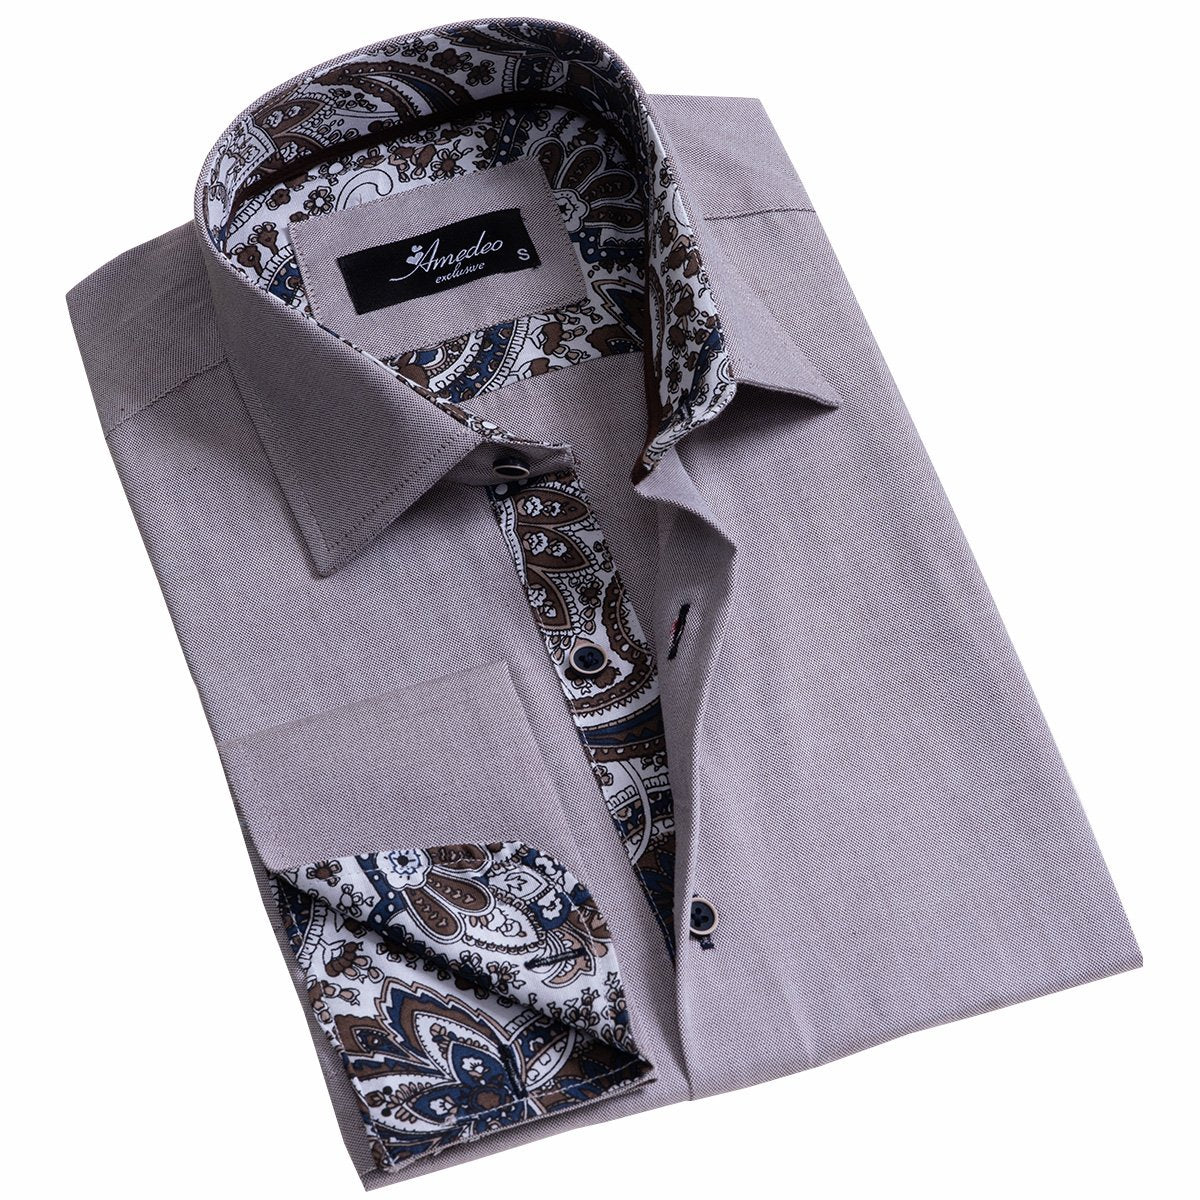 Light Purple Men's Slim Fit French Cuff Dress Shirts with Cufflink Holes - Casual and Formal - Amedeo Exclusive